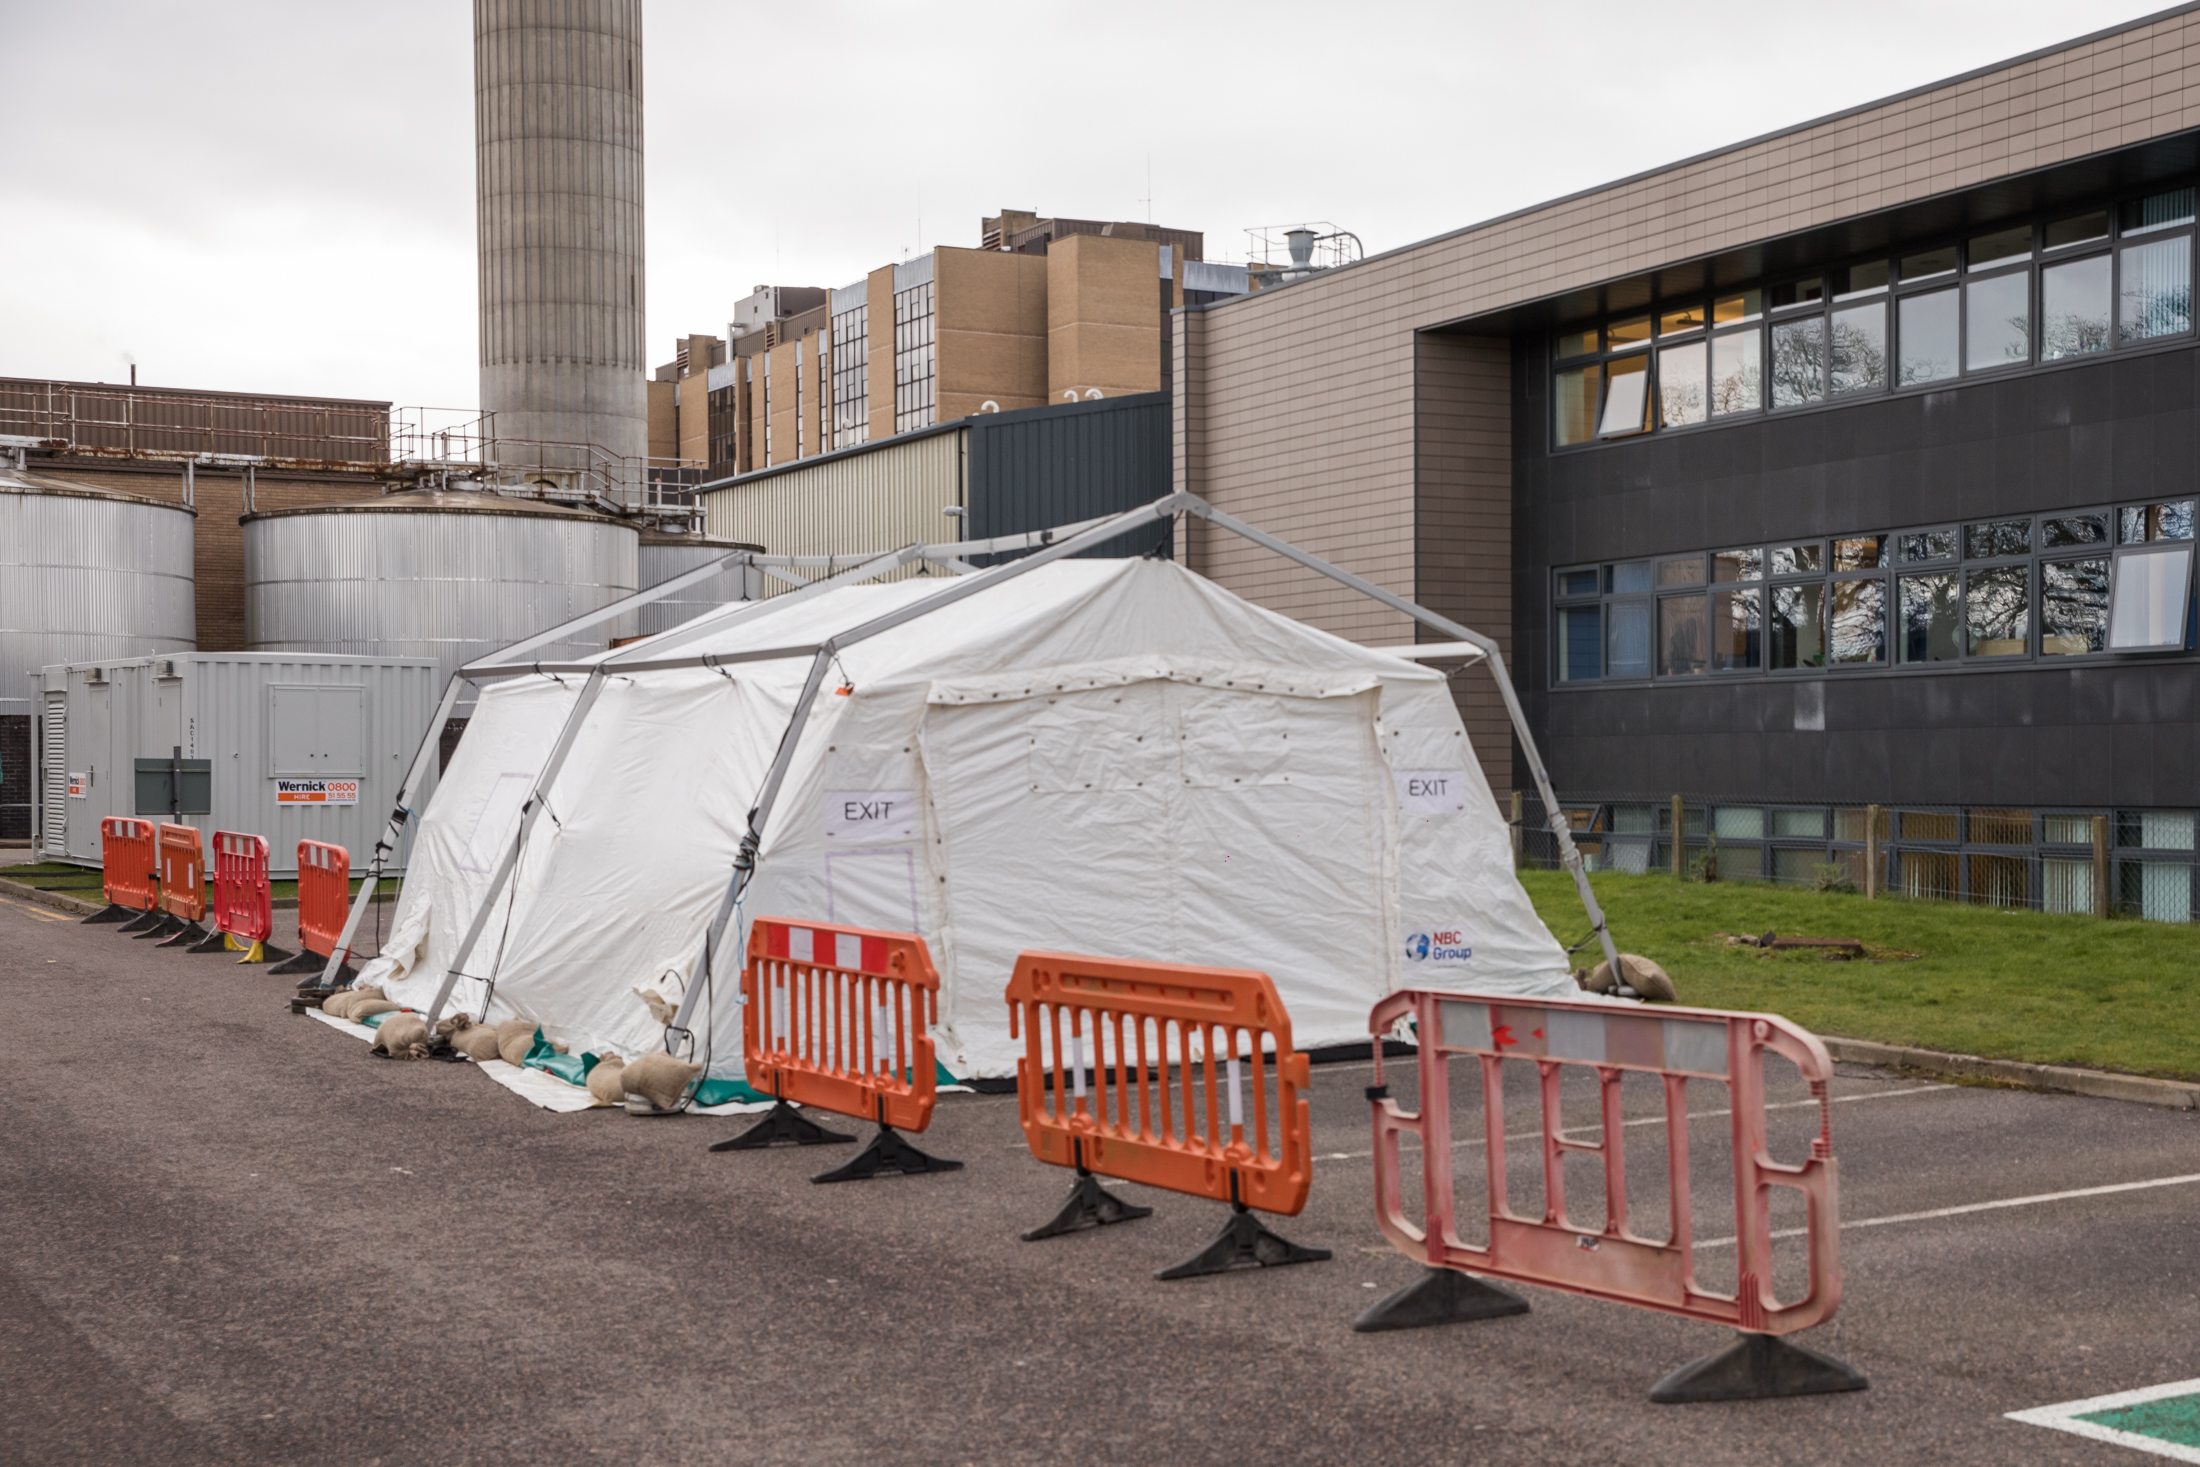 A tent erected behind Raigmore Hospital in Inverness is believed to be intended to screen people for coronavirus using a 'drive-through' setup.